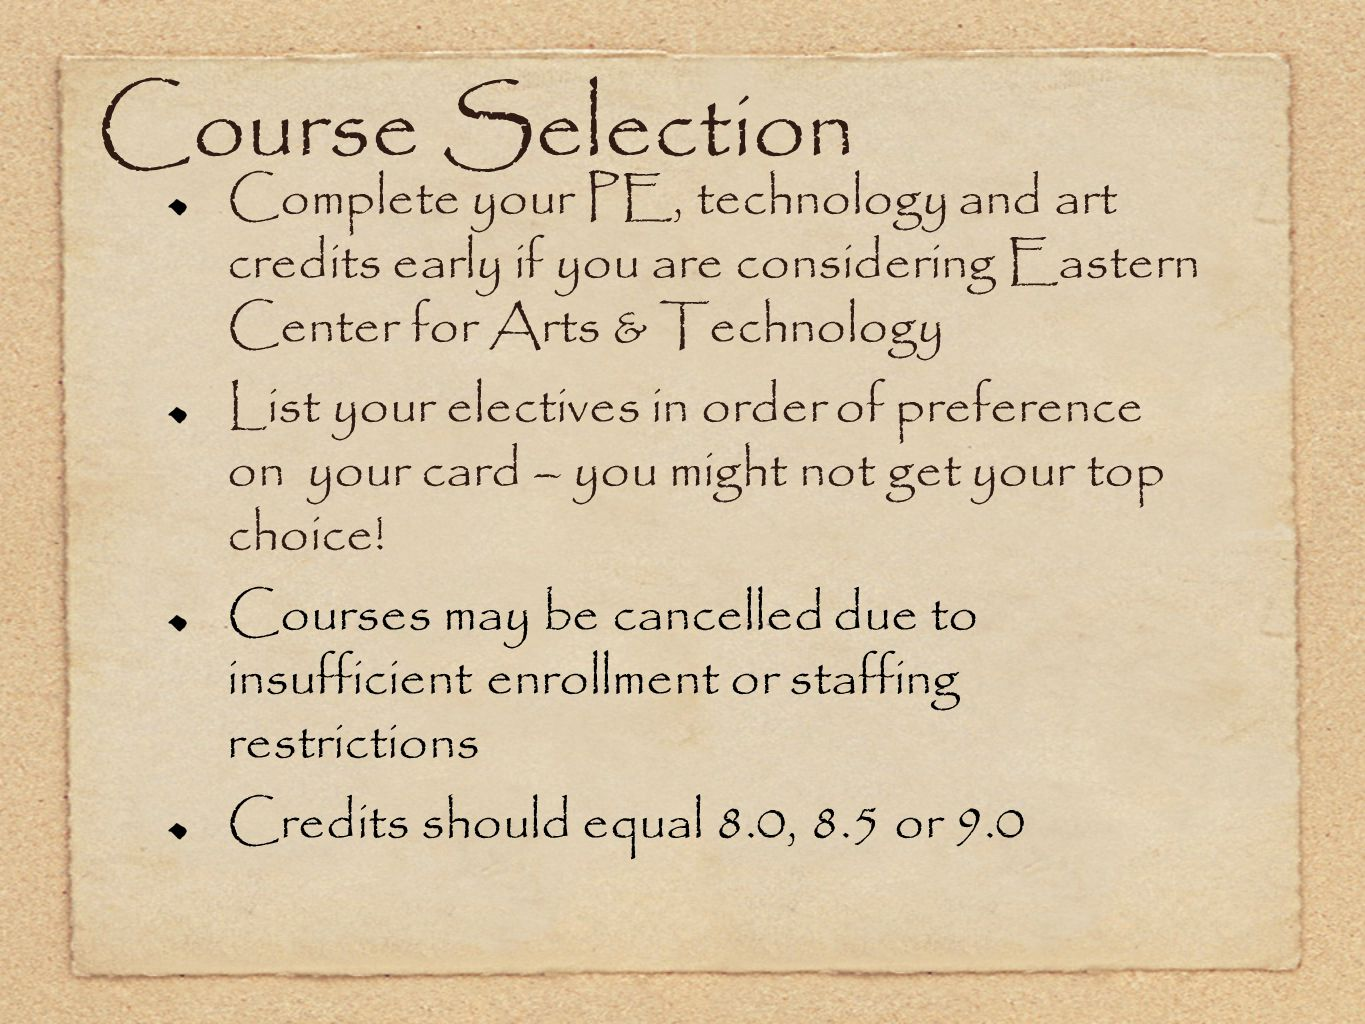 Course Selection Complete your PE, technology and art credits early if you are considering Eastern Center for Arts & Technology.